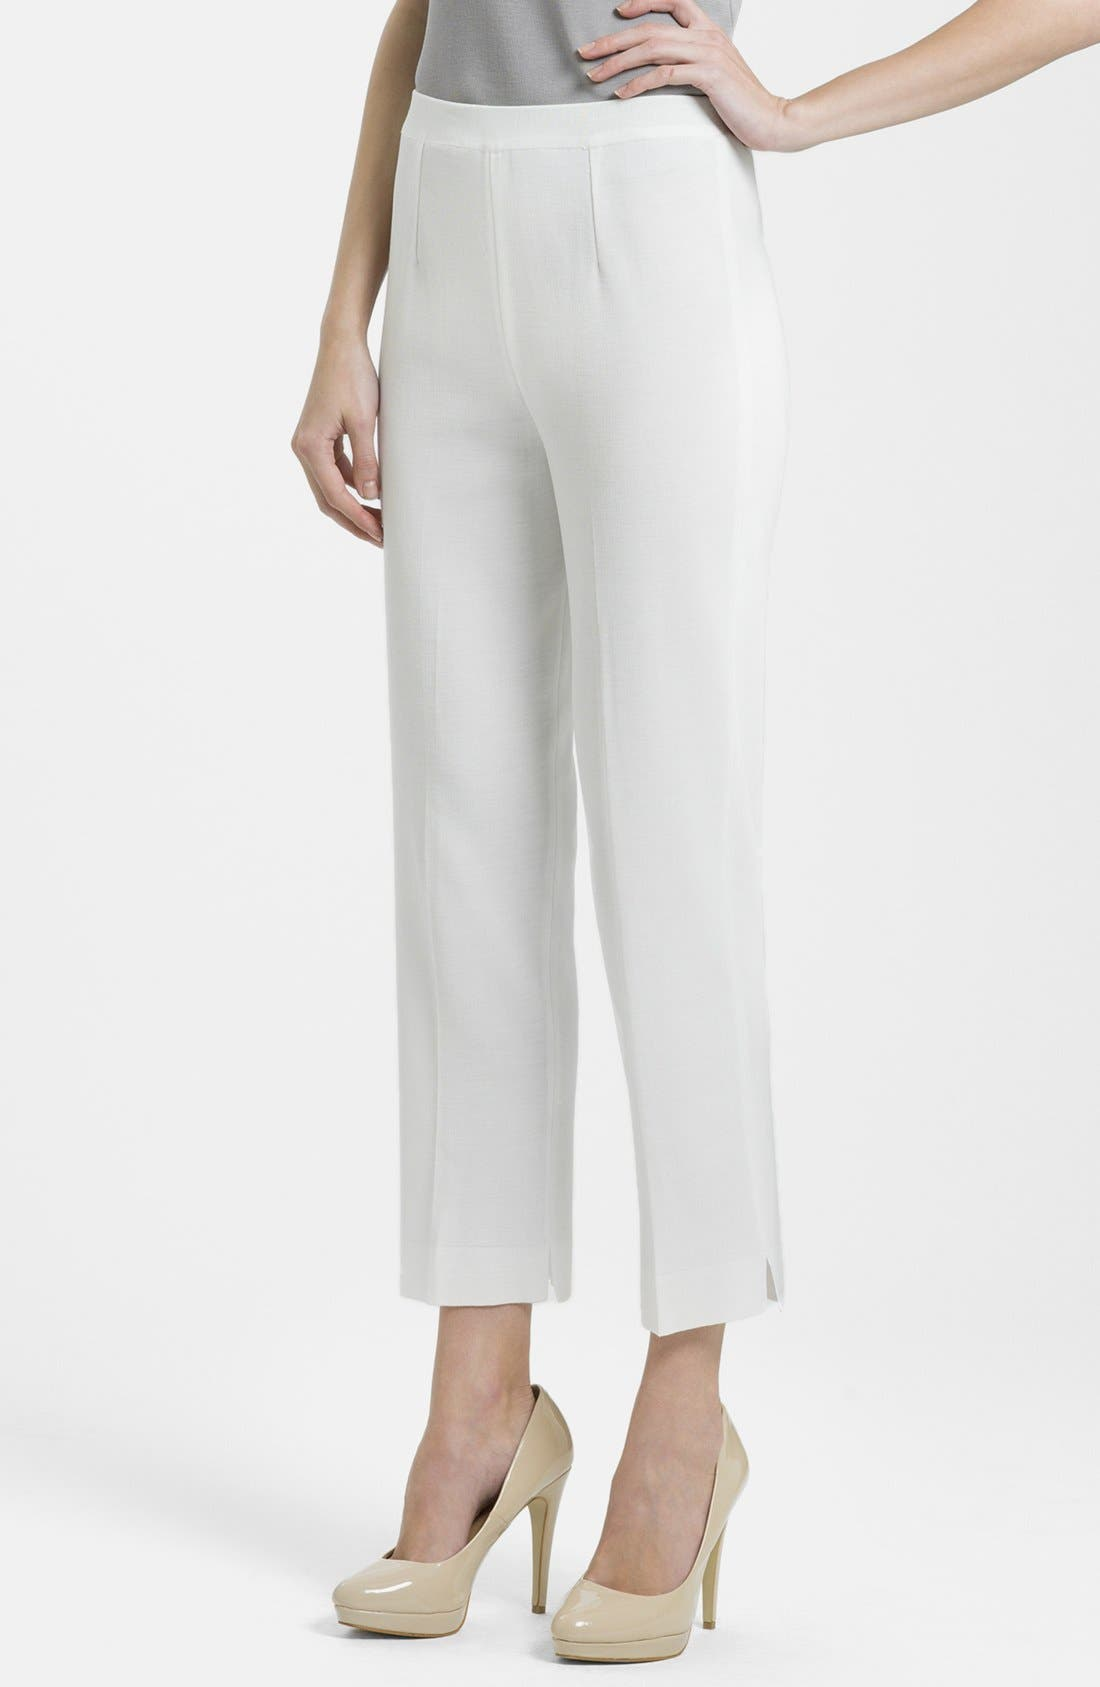 Main Image - Ming Wang Lined Ankle Pants